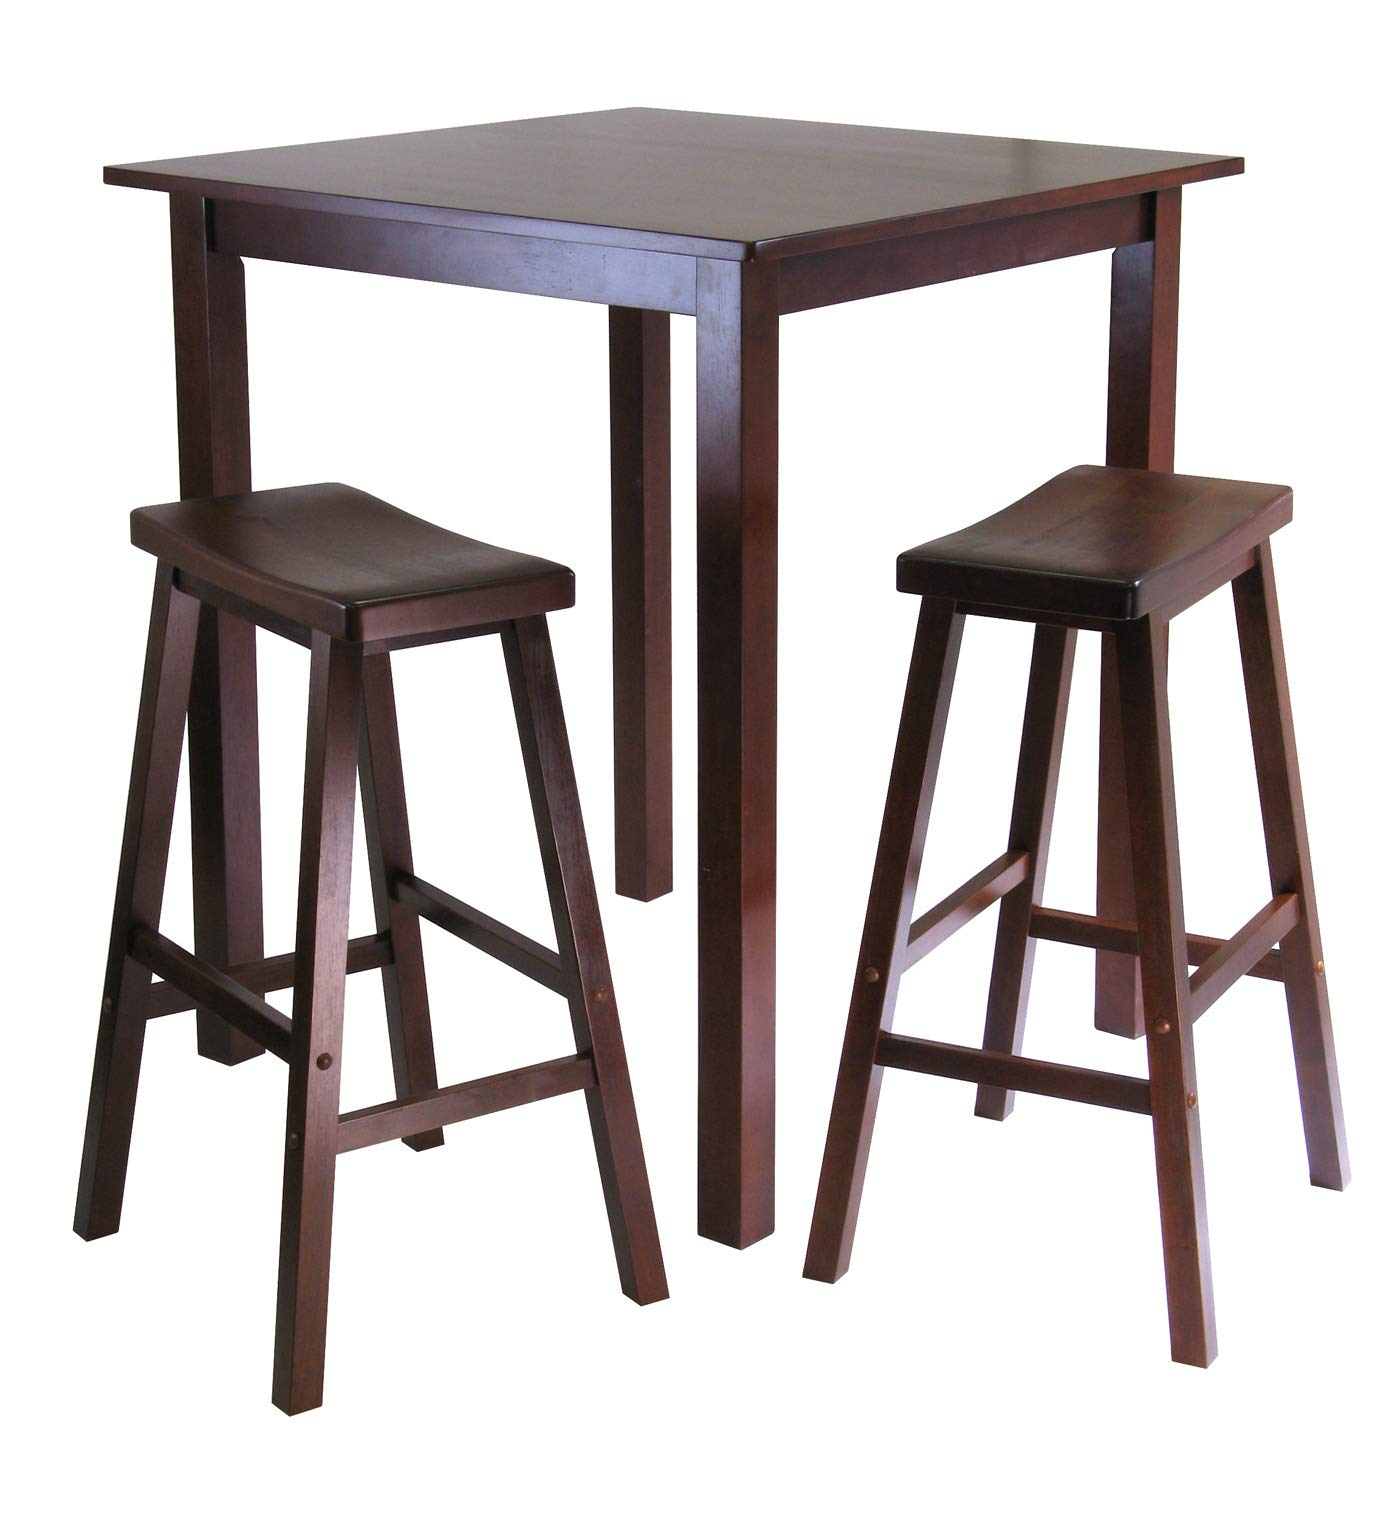 Winsome Wood 94349 Parking 3-pc Pub Set Dining Table, Walnut by Winsome Wood